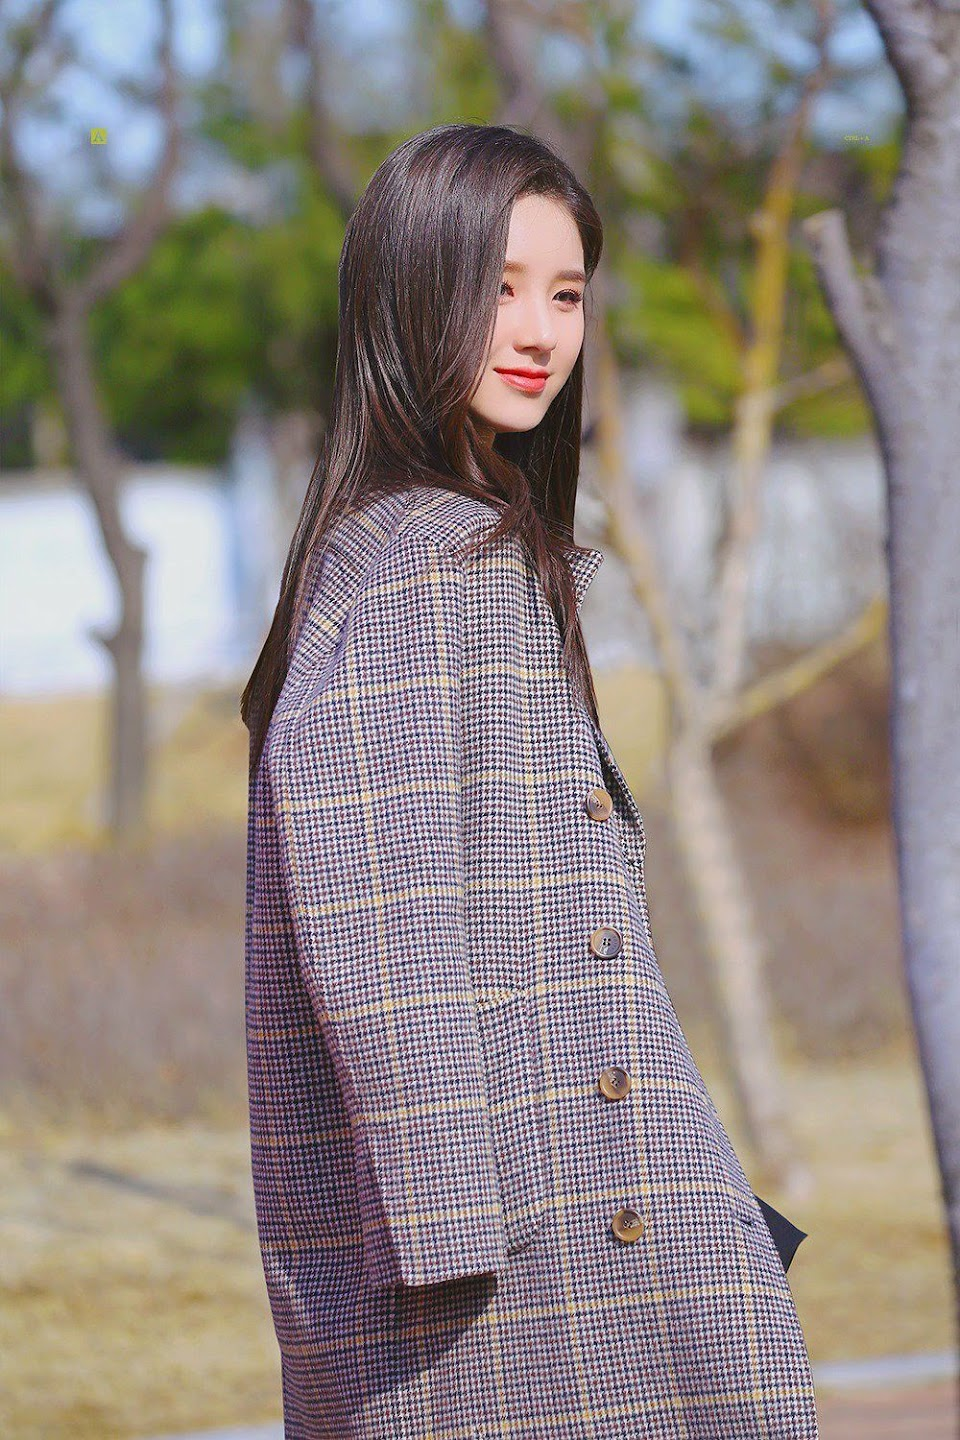 heejin plaid 31